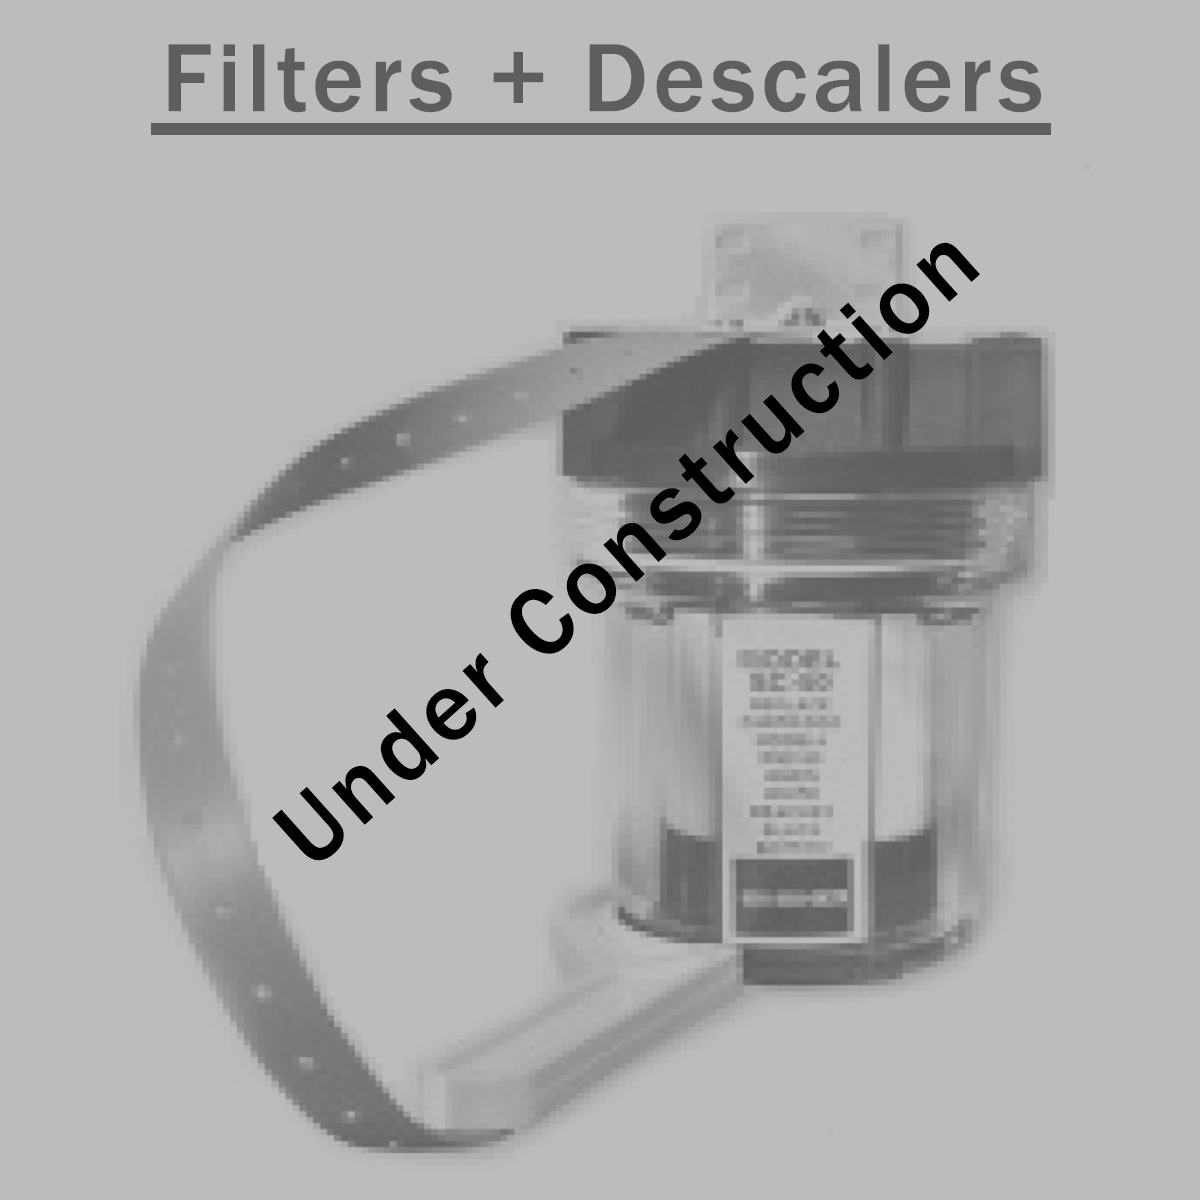 Filters and Descalers